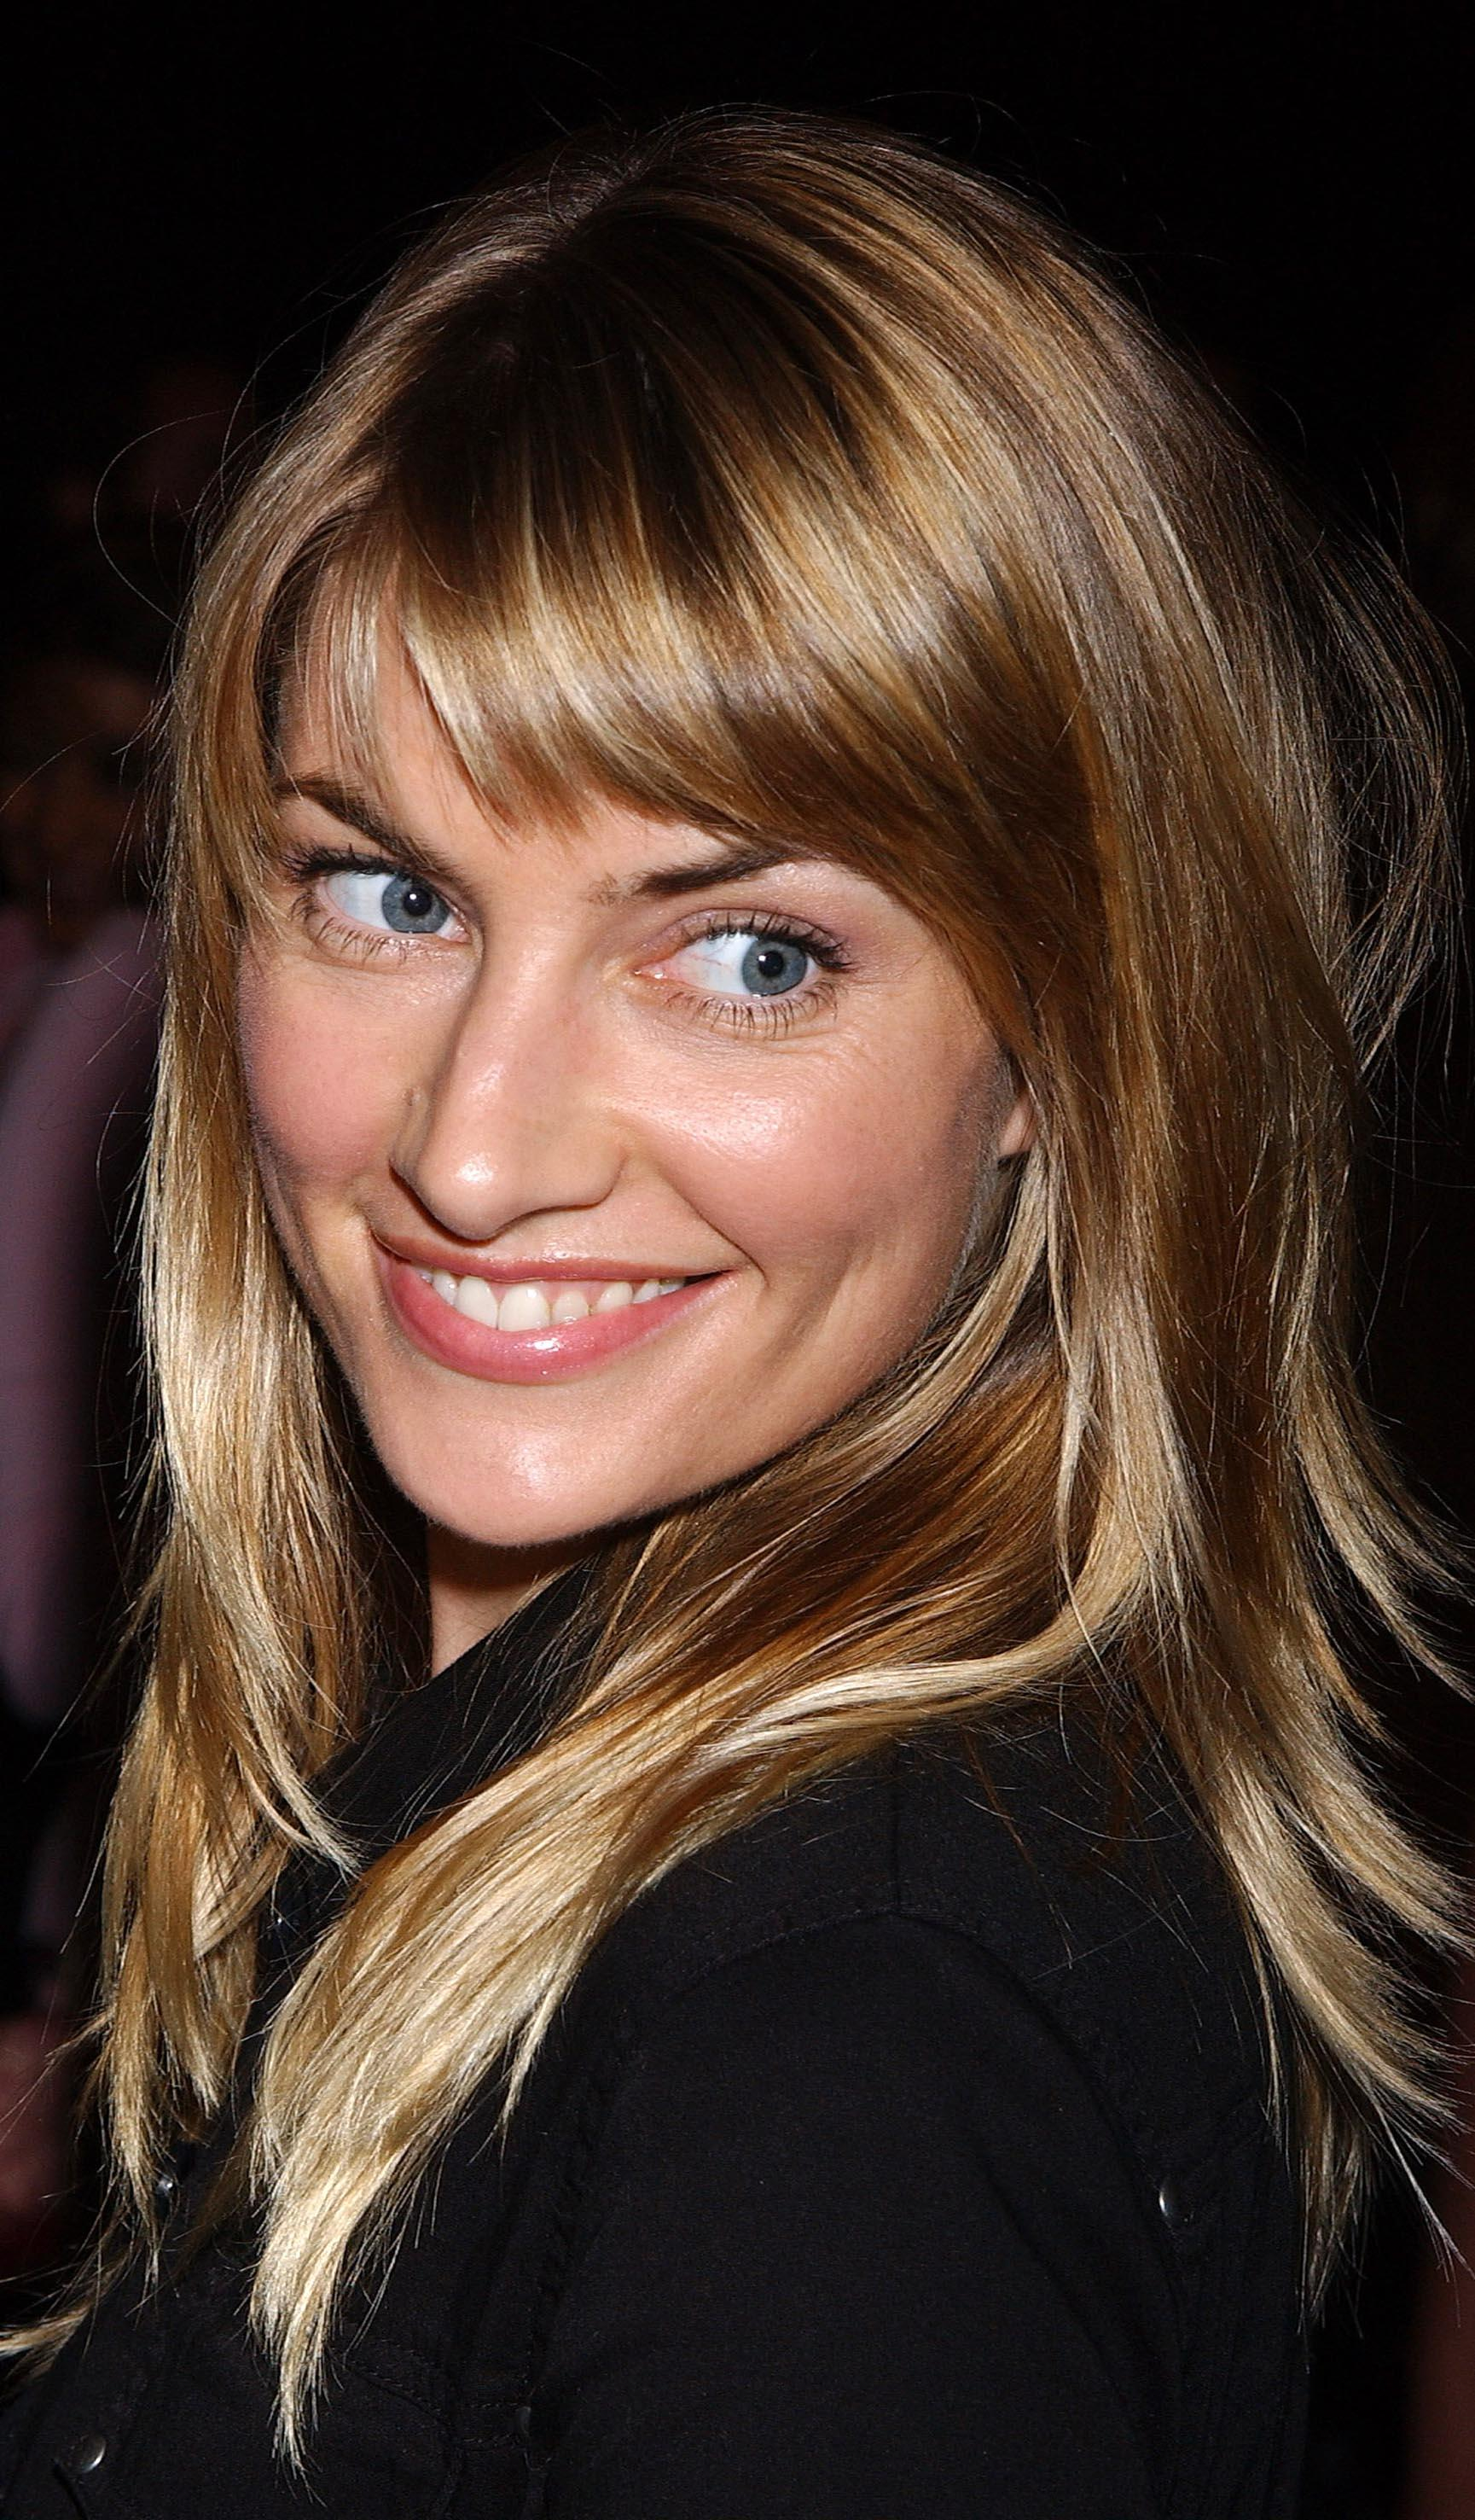 Madchen Amick Nude Actress Search 28 results